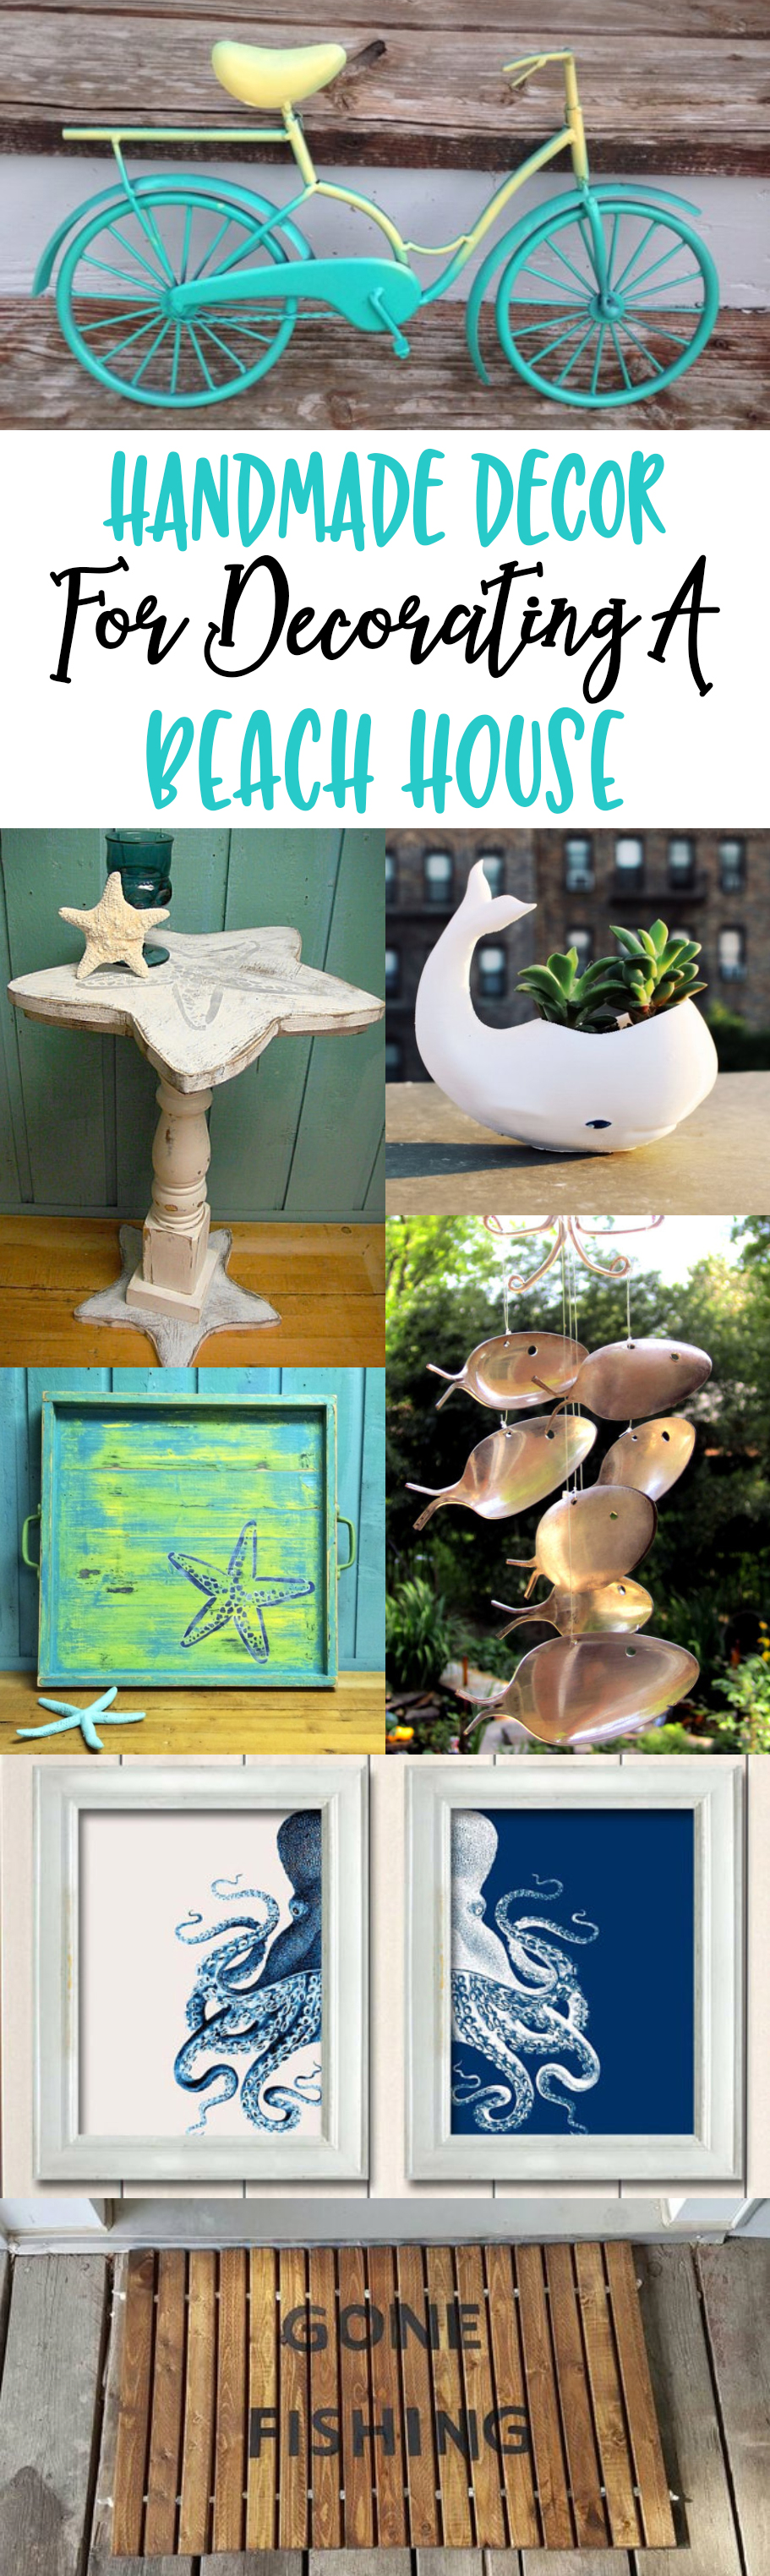 Handmade Decor Ideas For Decorating A Beach House #beach #summer #decor #decorating #homedecor